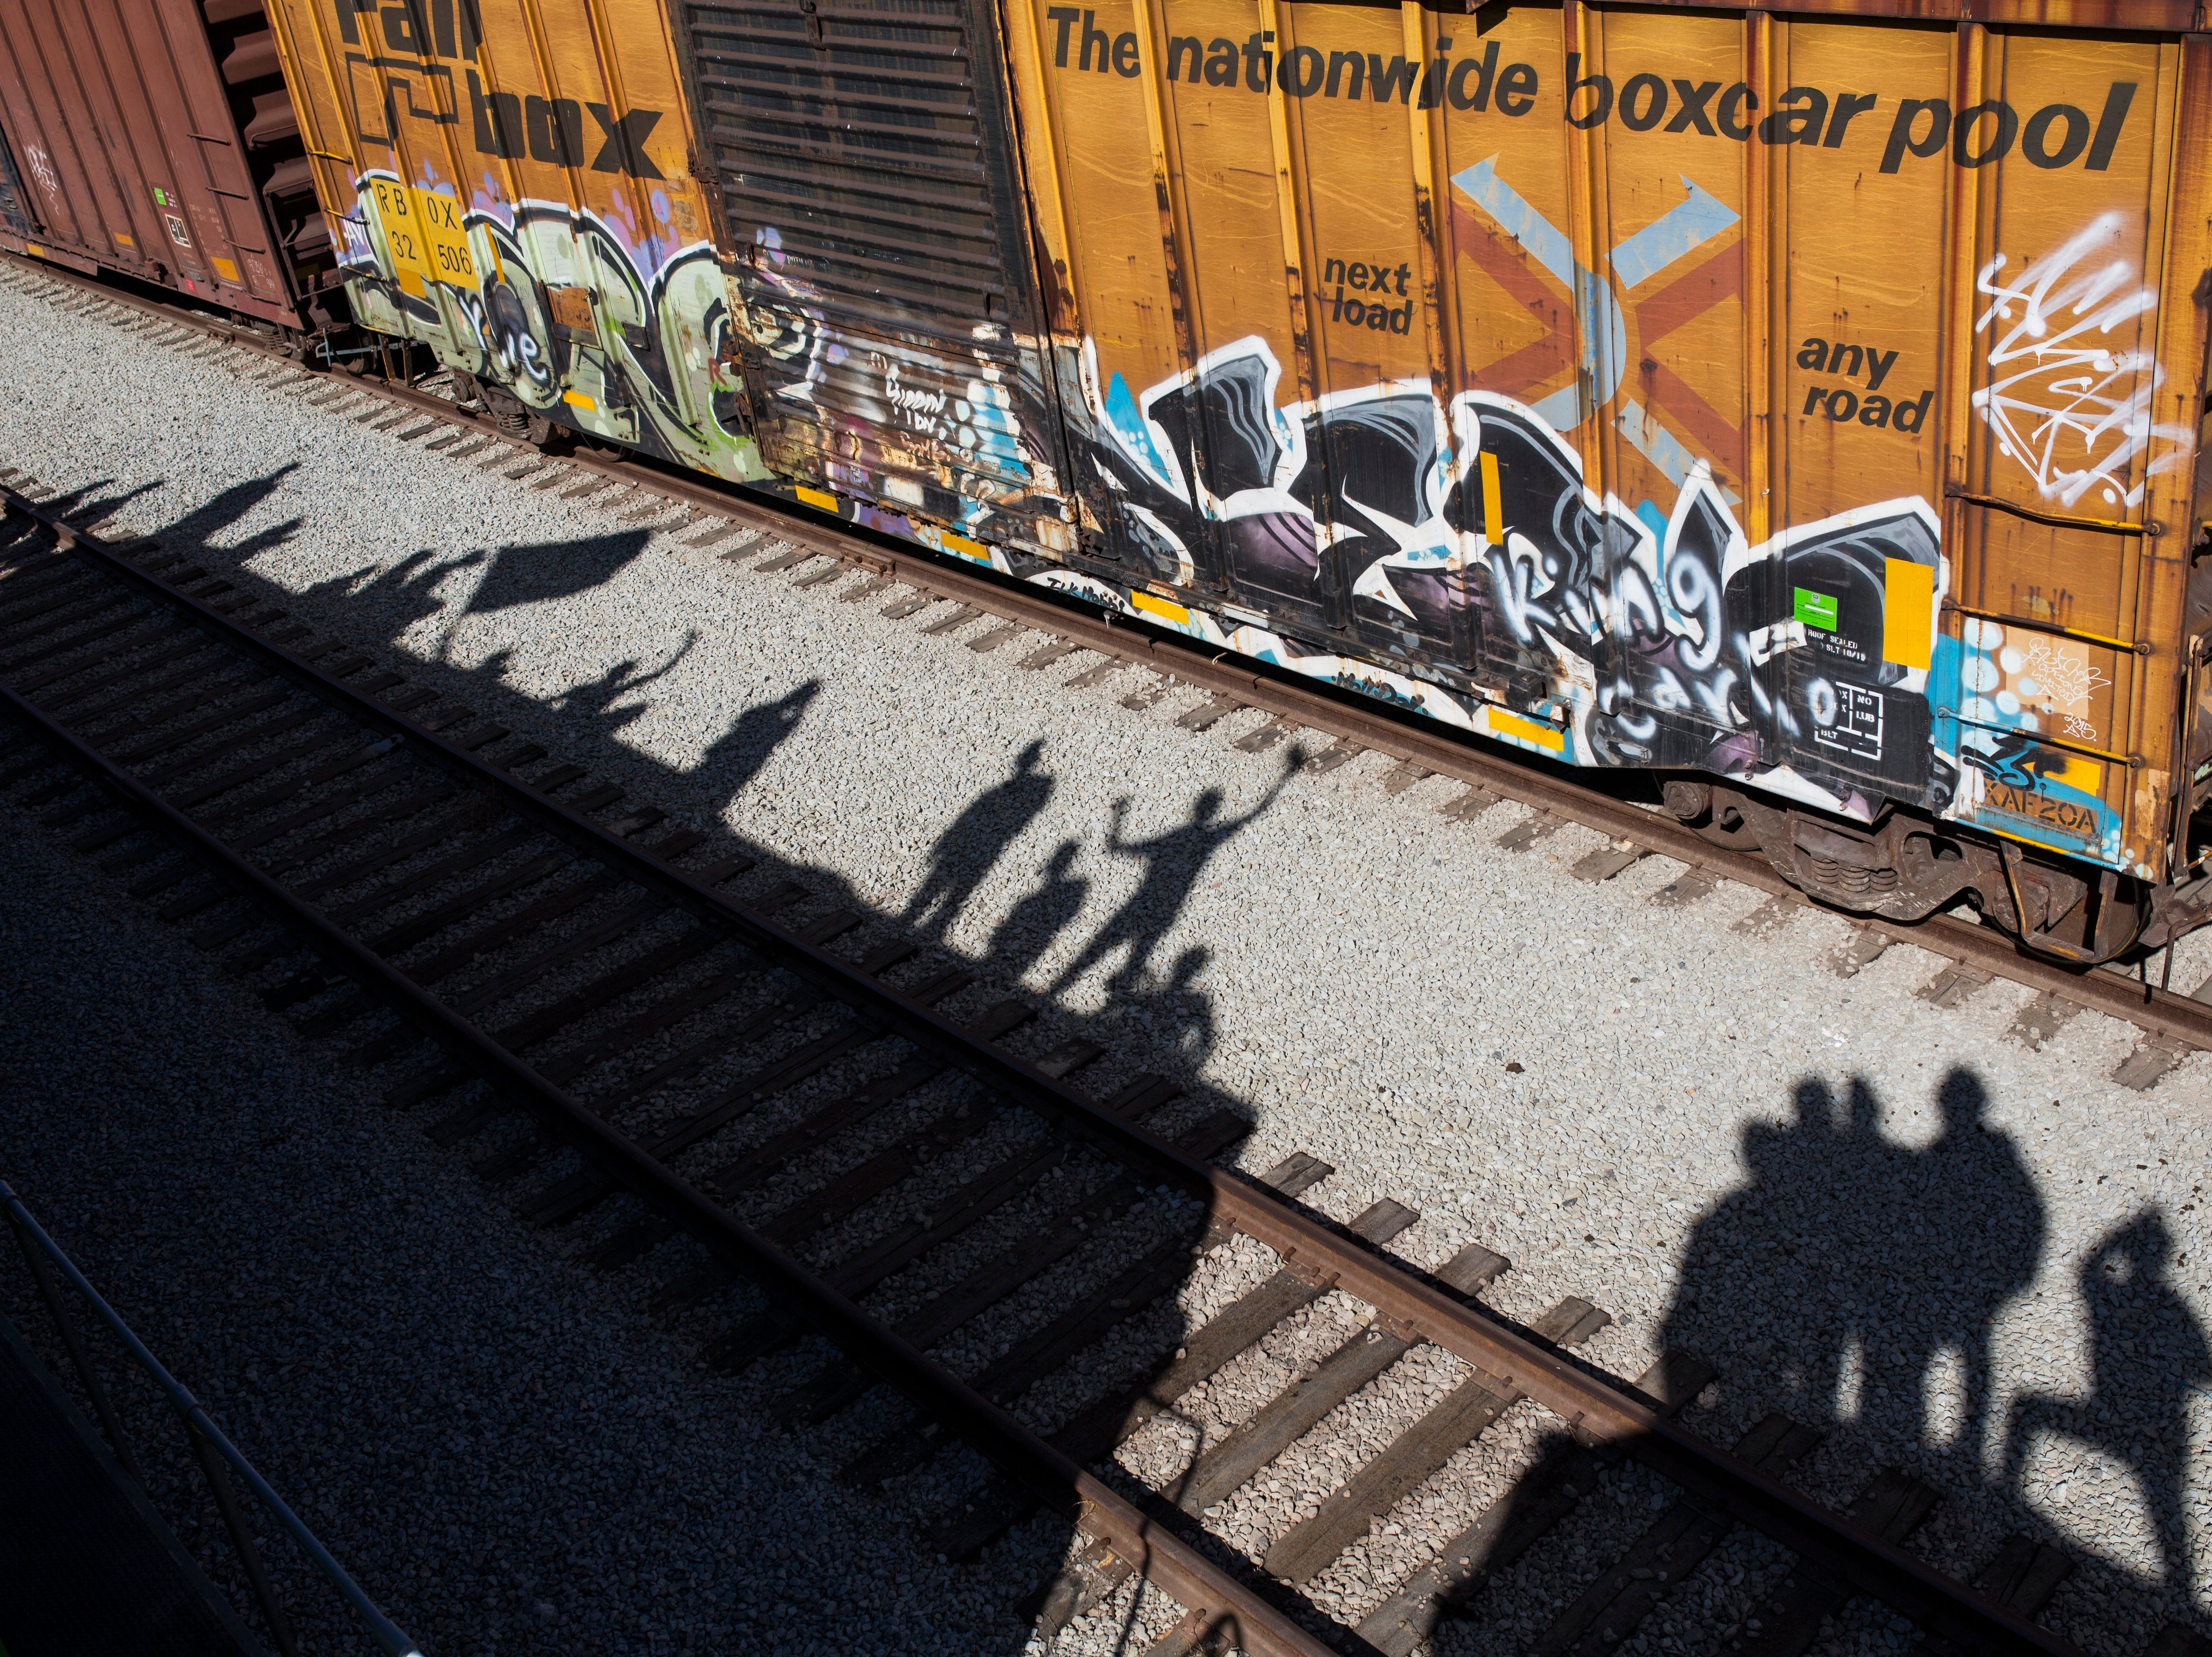 Shadows of migrants are cast on the railroad tracks at the Mexico-U.S. border in Tijuana, Mexico, Sunday, Nov. 25, 2018, as a group of migrants tries to reach the U.S. The mayor of Tijuana has declared a humanitarian crisis in his border city and says that he has asked the United Nations for aid to deal with the approximately 5,000 Central American migrants who have arrived in the city.